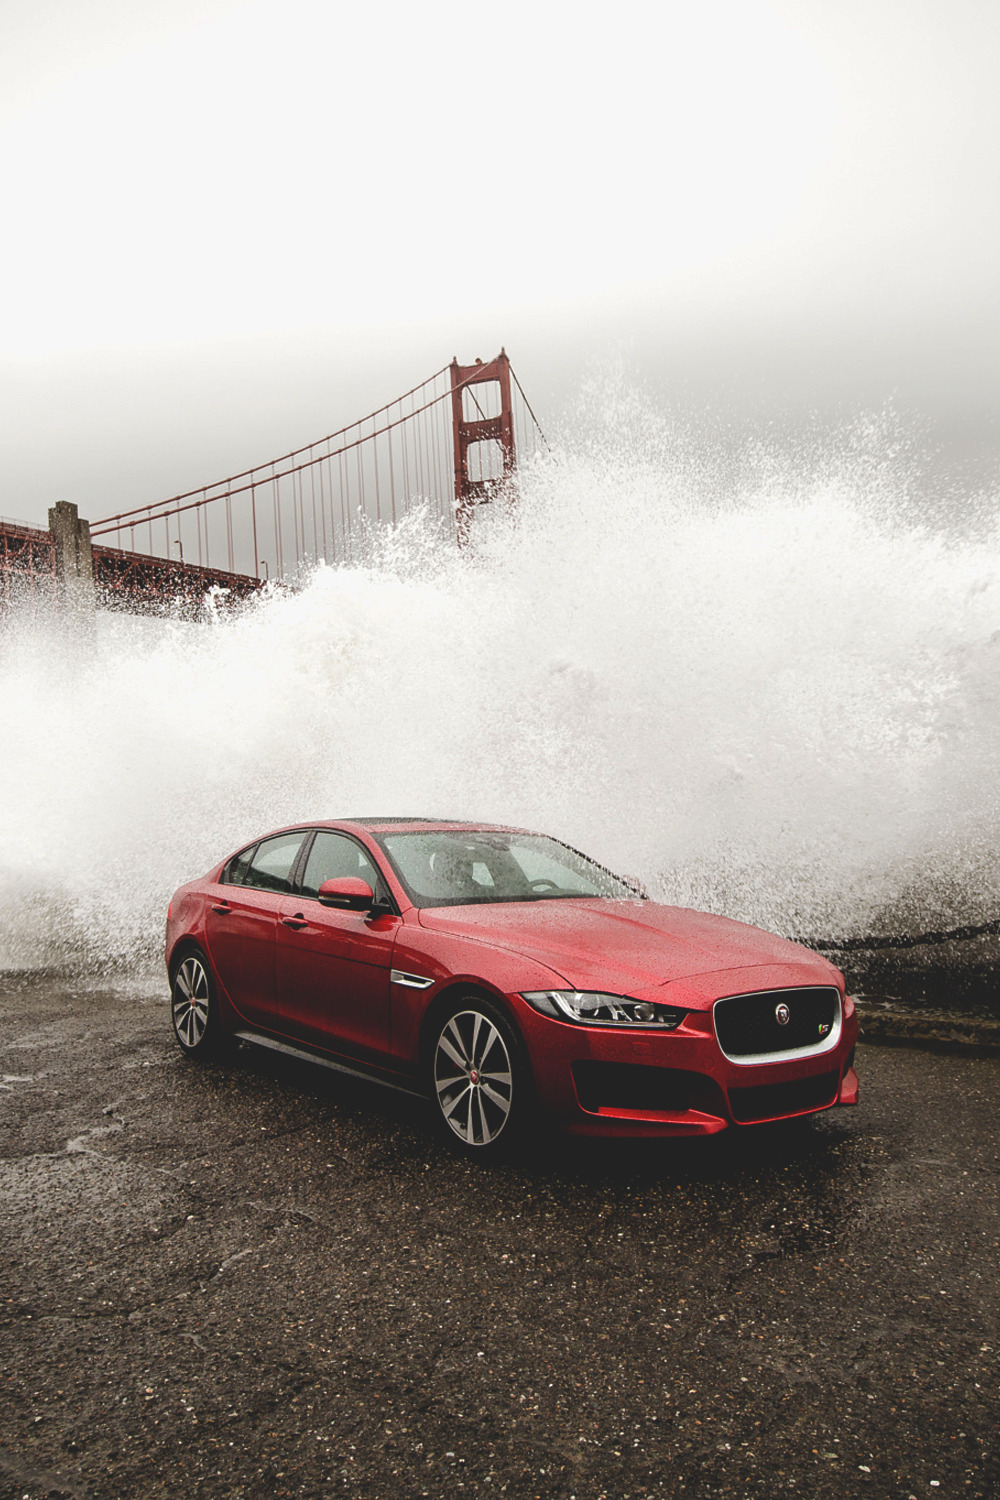 jaguar red sportcar bridge golden gate water drops